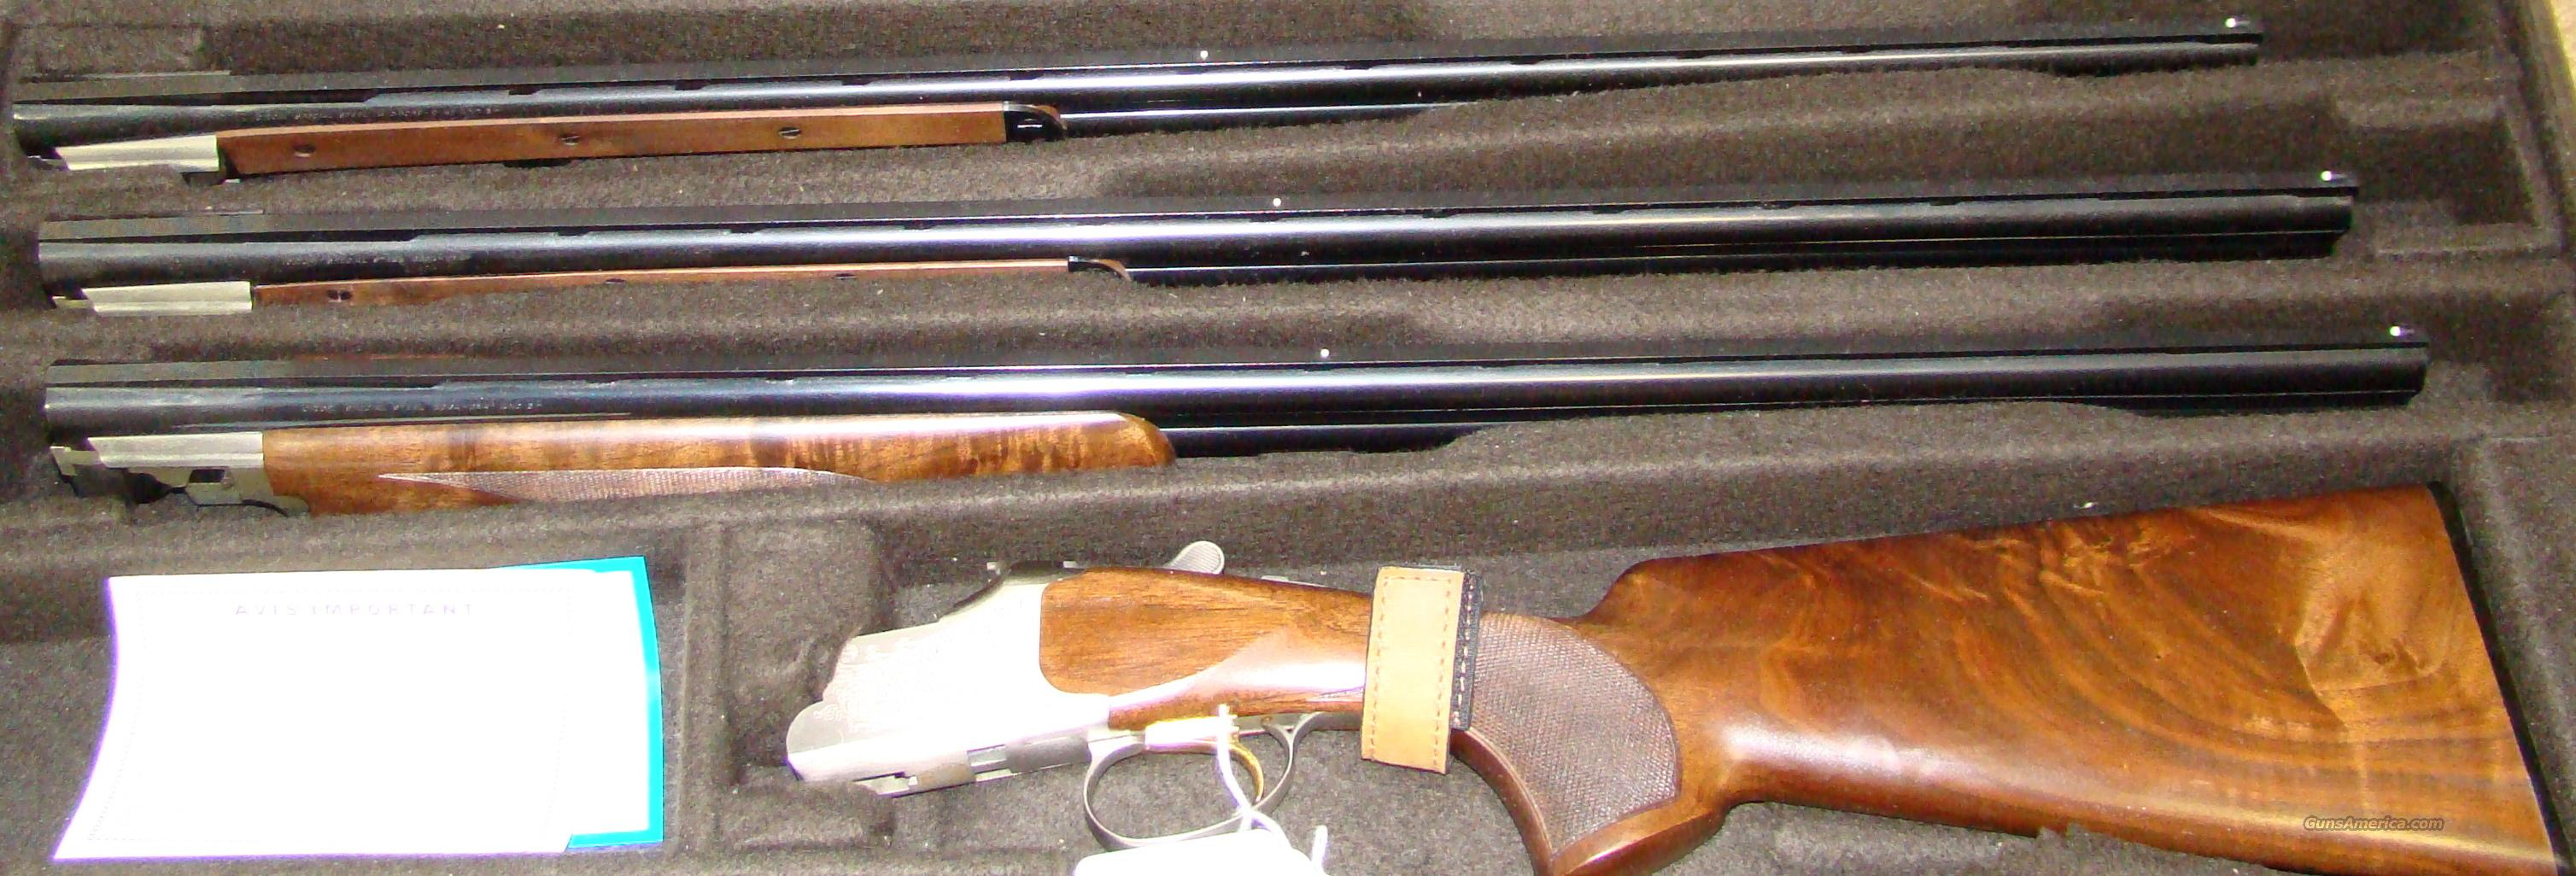 Browning 525 feather 3 barrel set with custom carry case  Guns > Shotguns > Browning Shotguns > Over Unders > Citori > Hunting